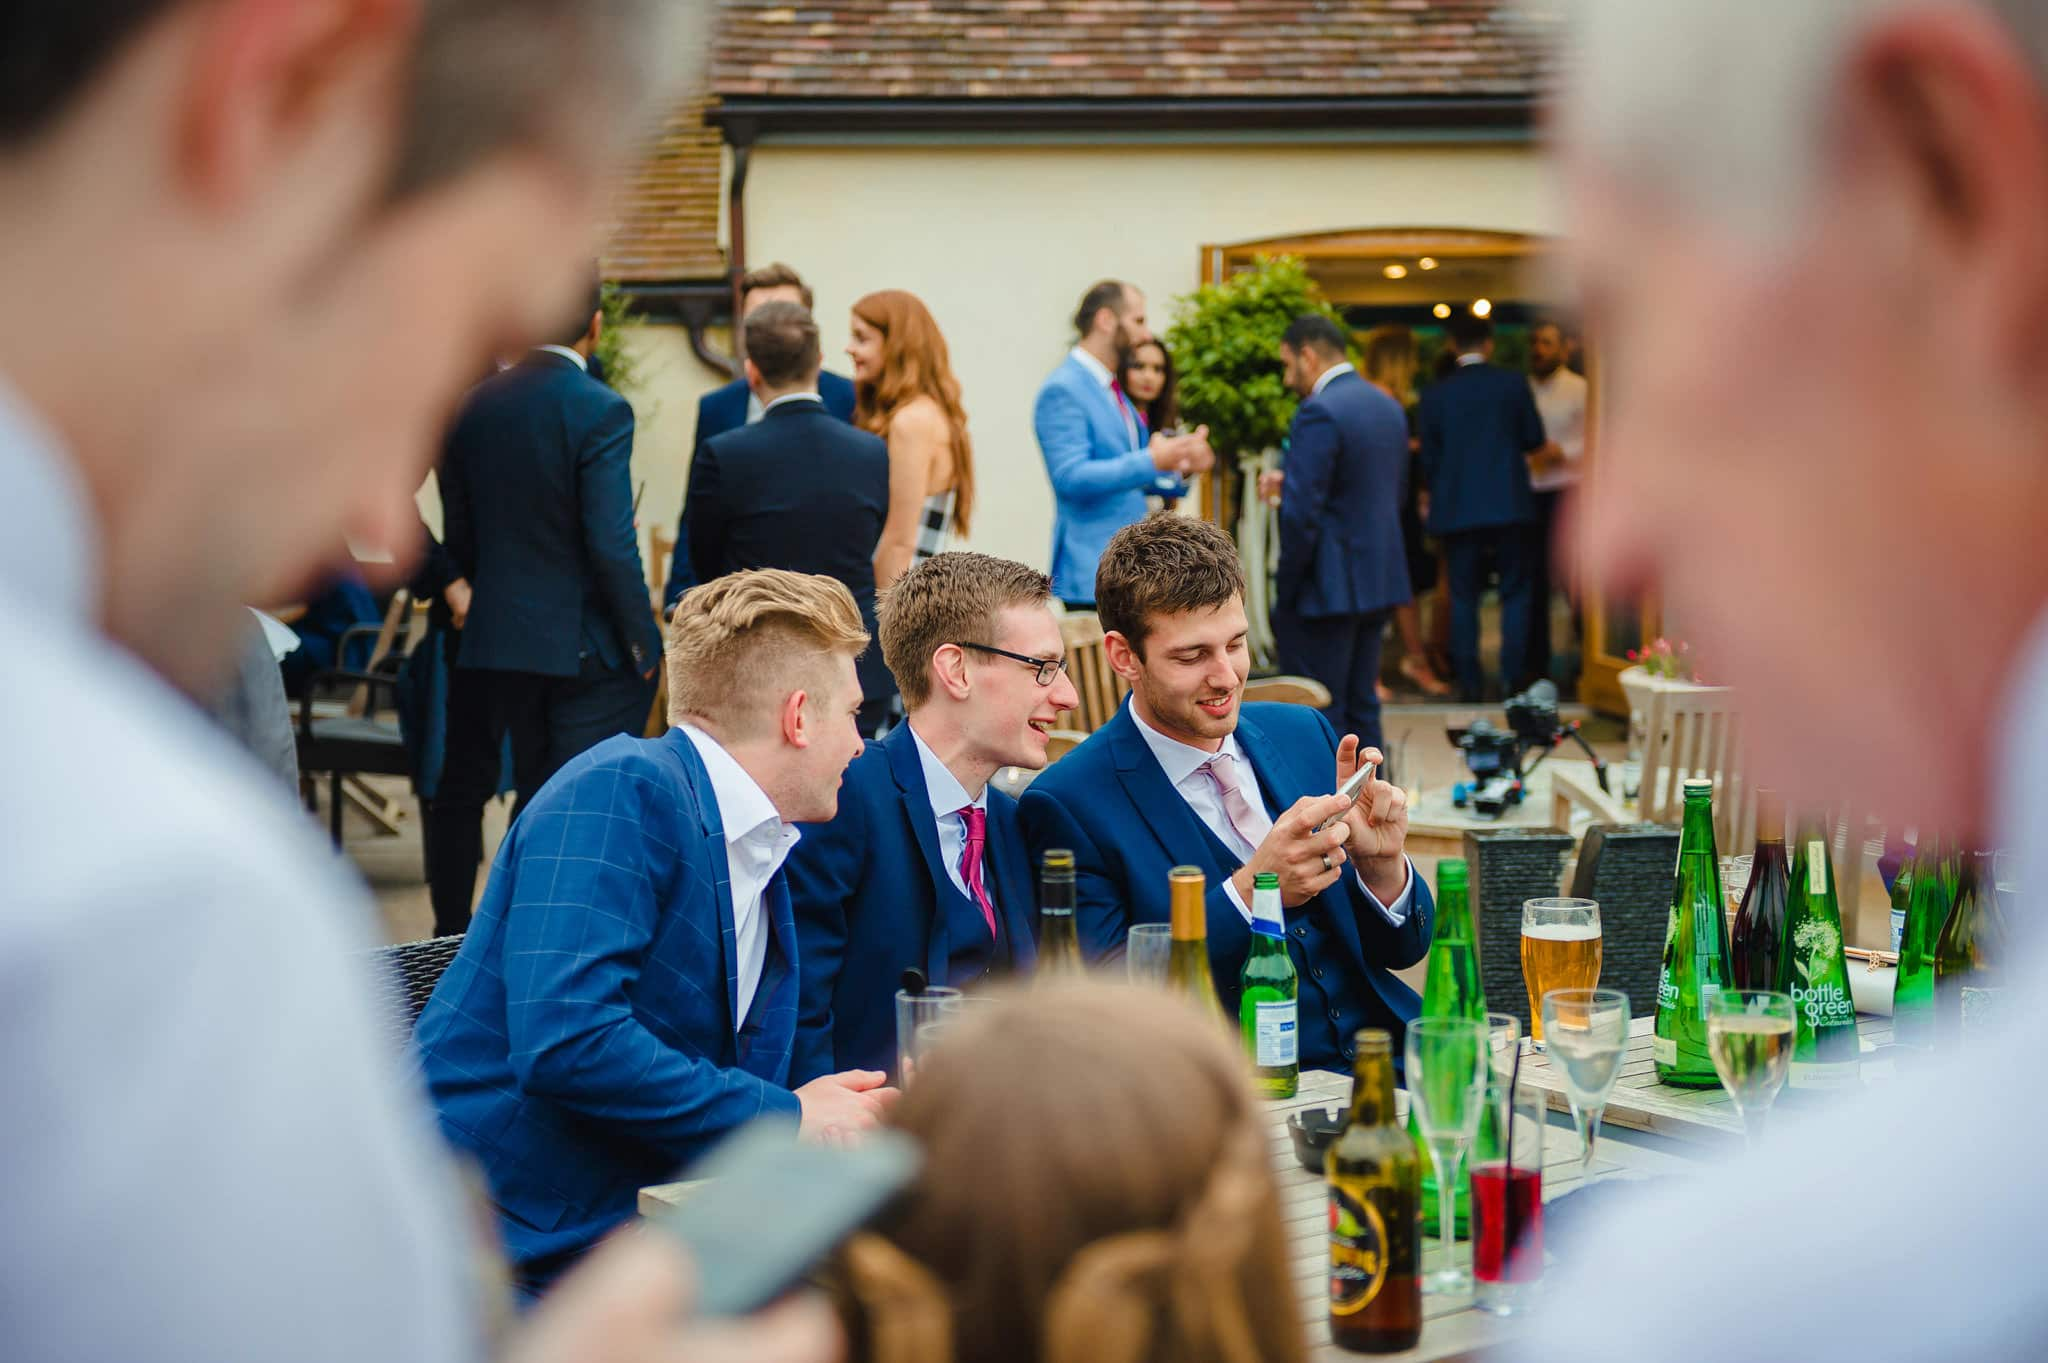 wedding at redhouse barn 203 - Wedding at Redhouse Barn in Stoke Prior, Worcestershire